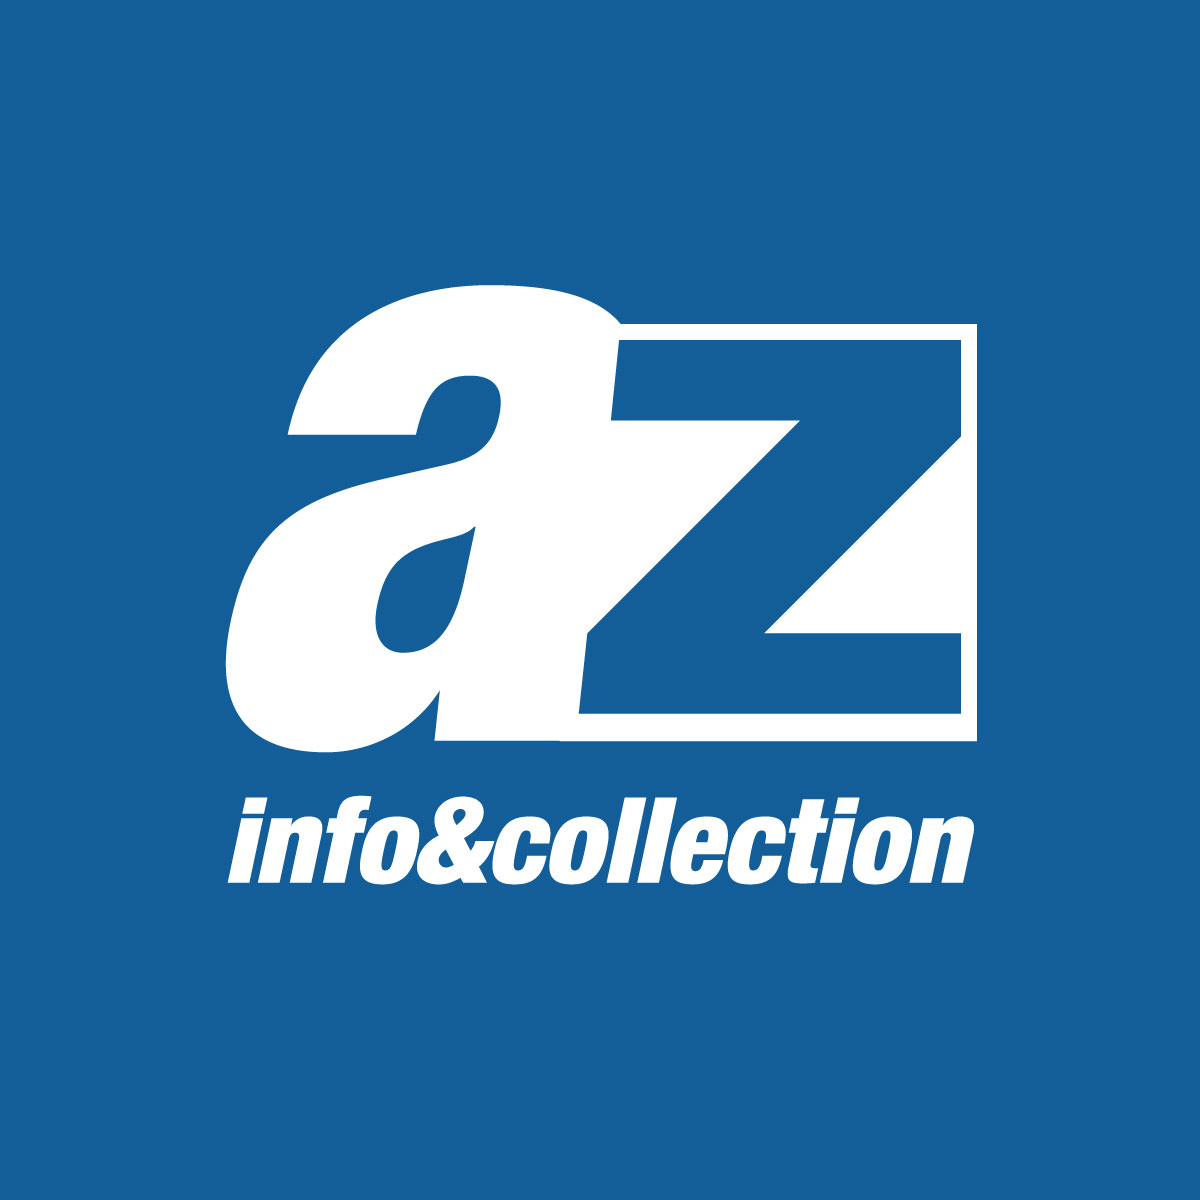 Azinfocollection_logo